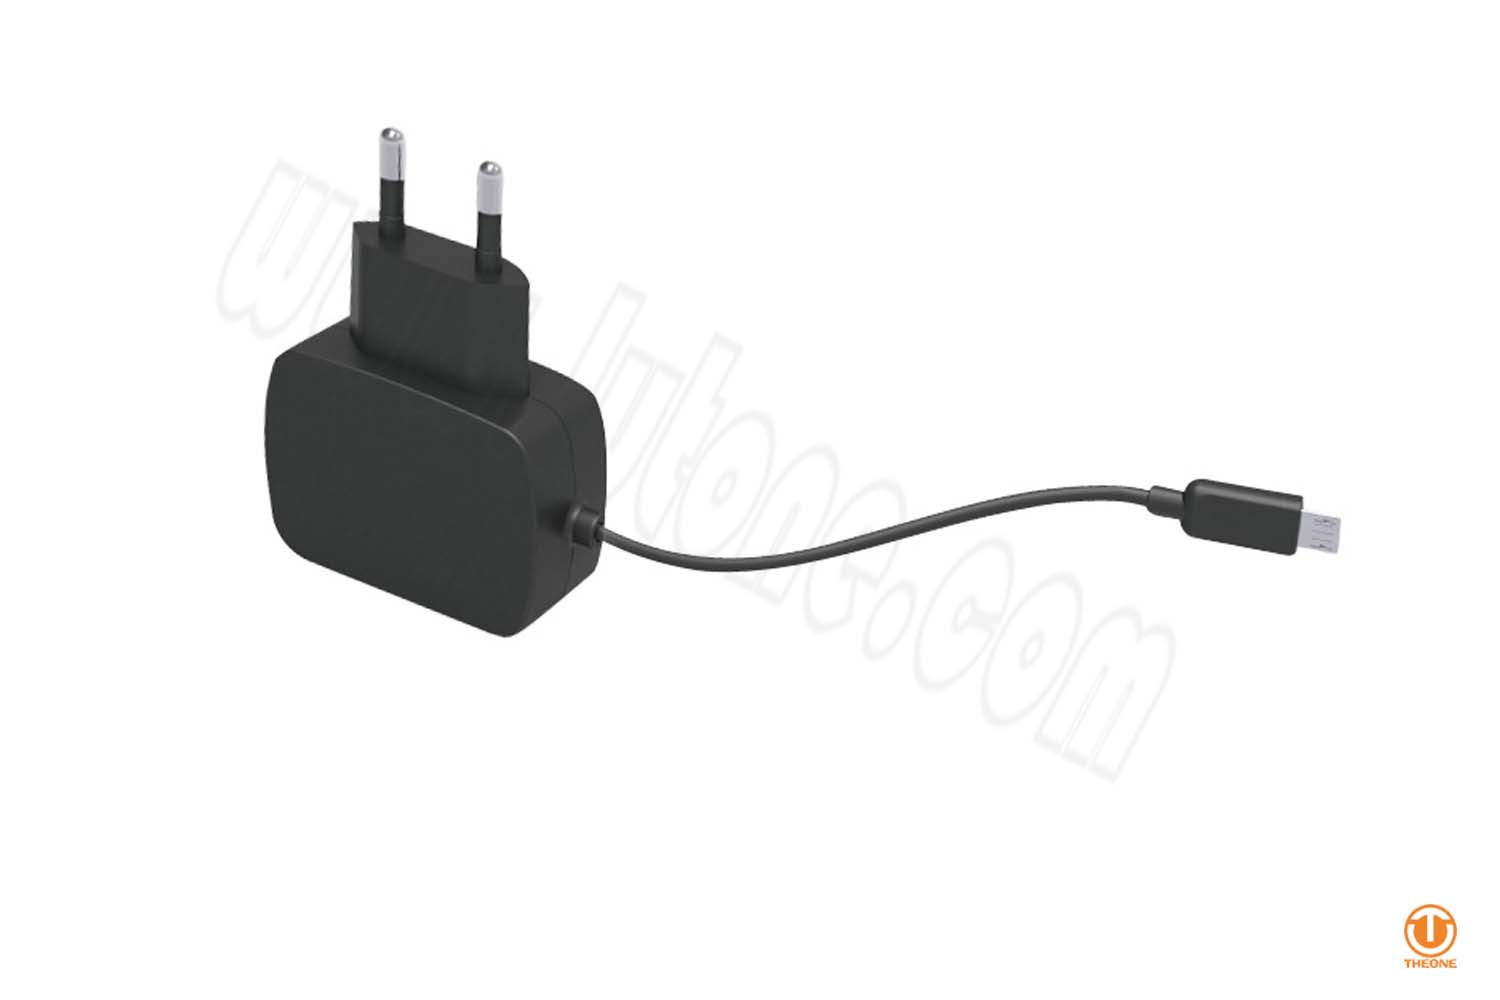 tc02b7-2 wired wall charger